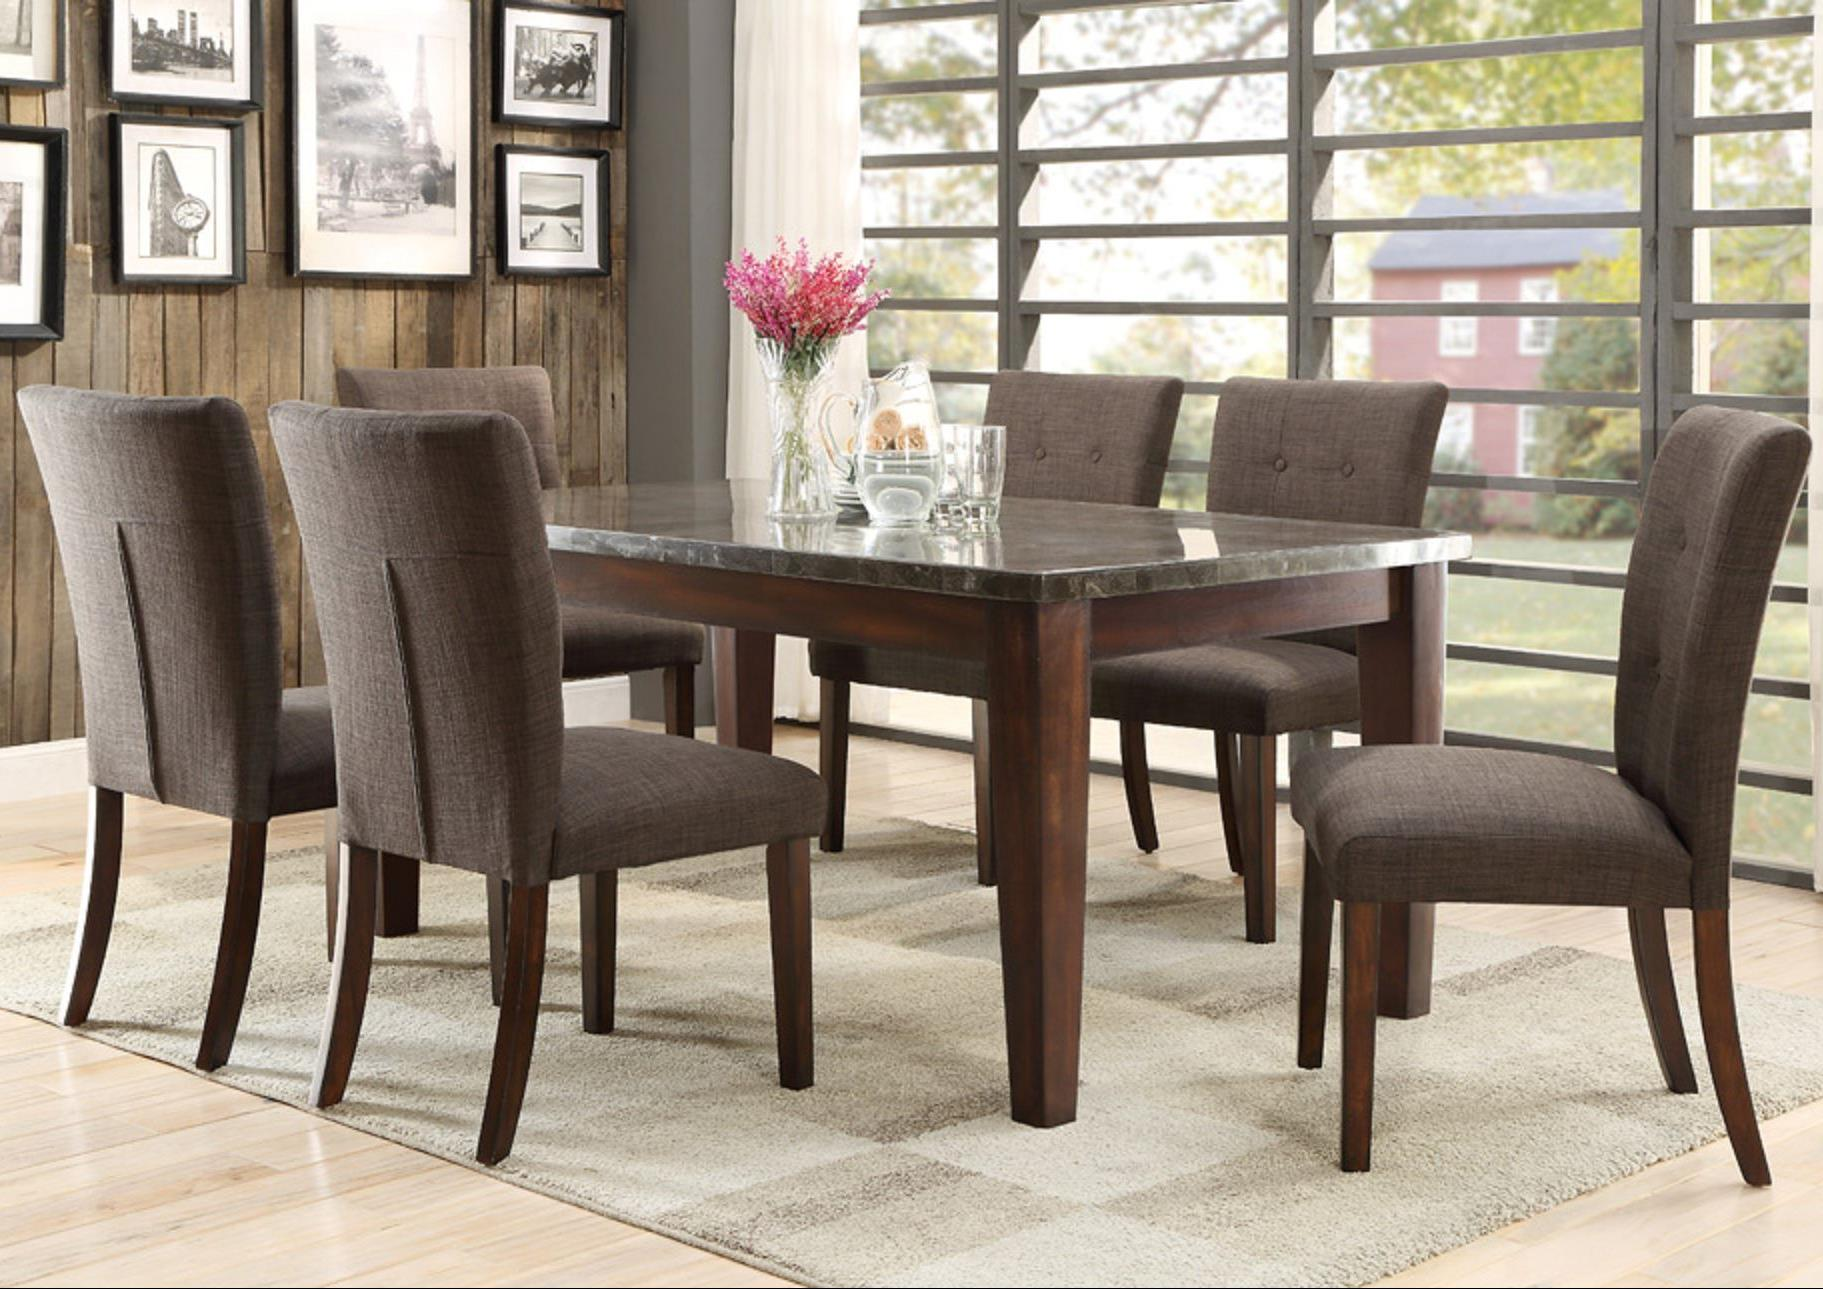 Homelegance Dorritt 7 Piece Dining Set - Item Number: 5281-64+6x5281S